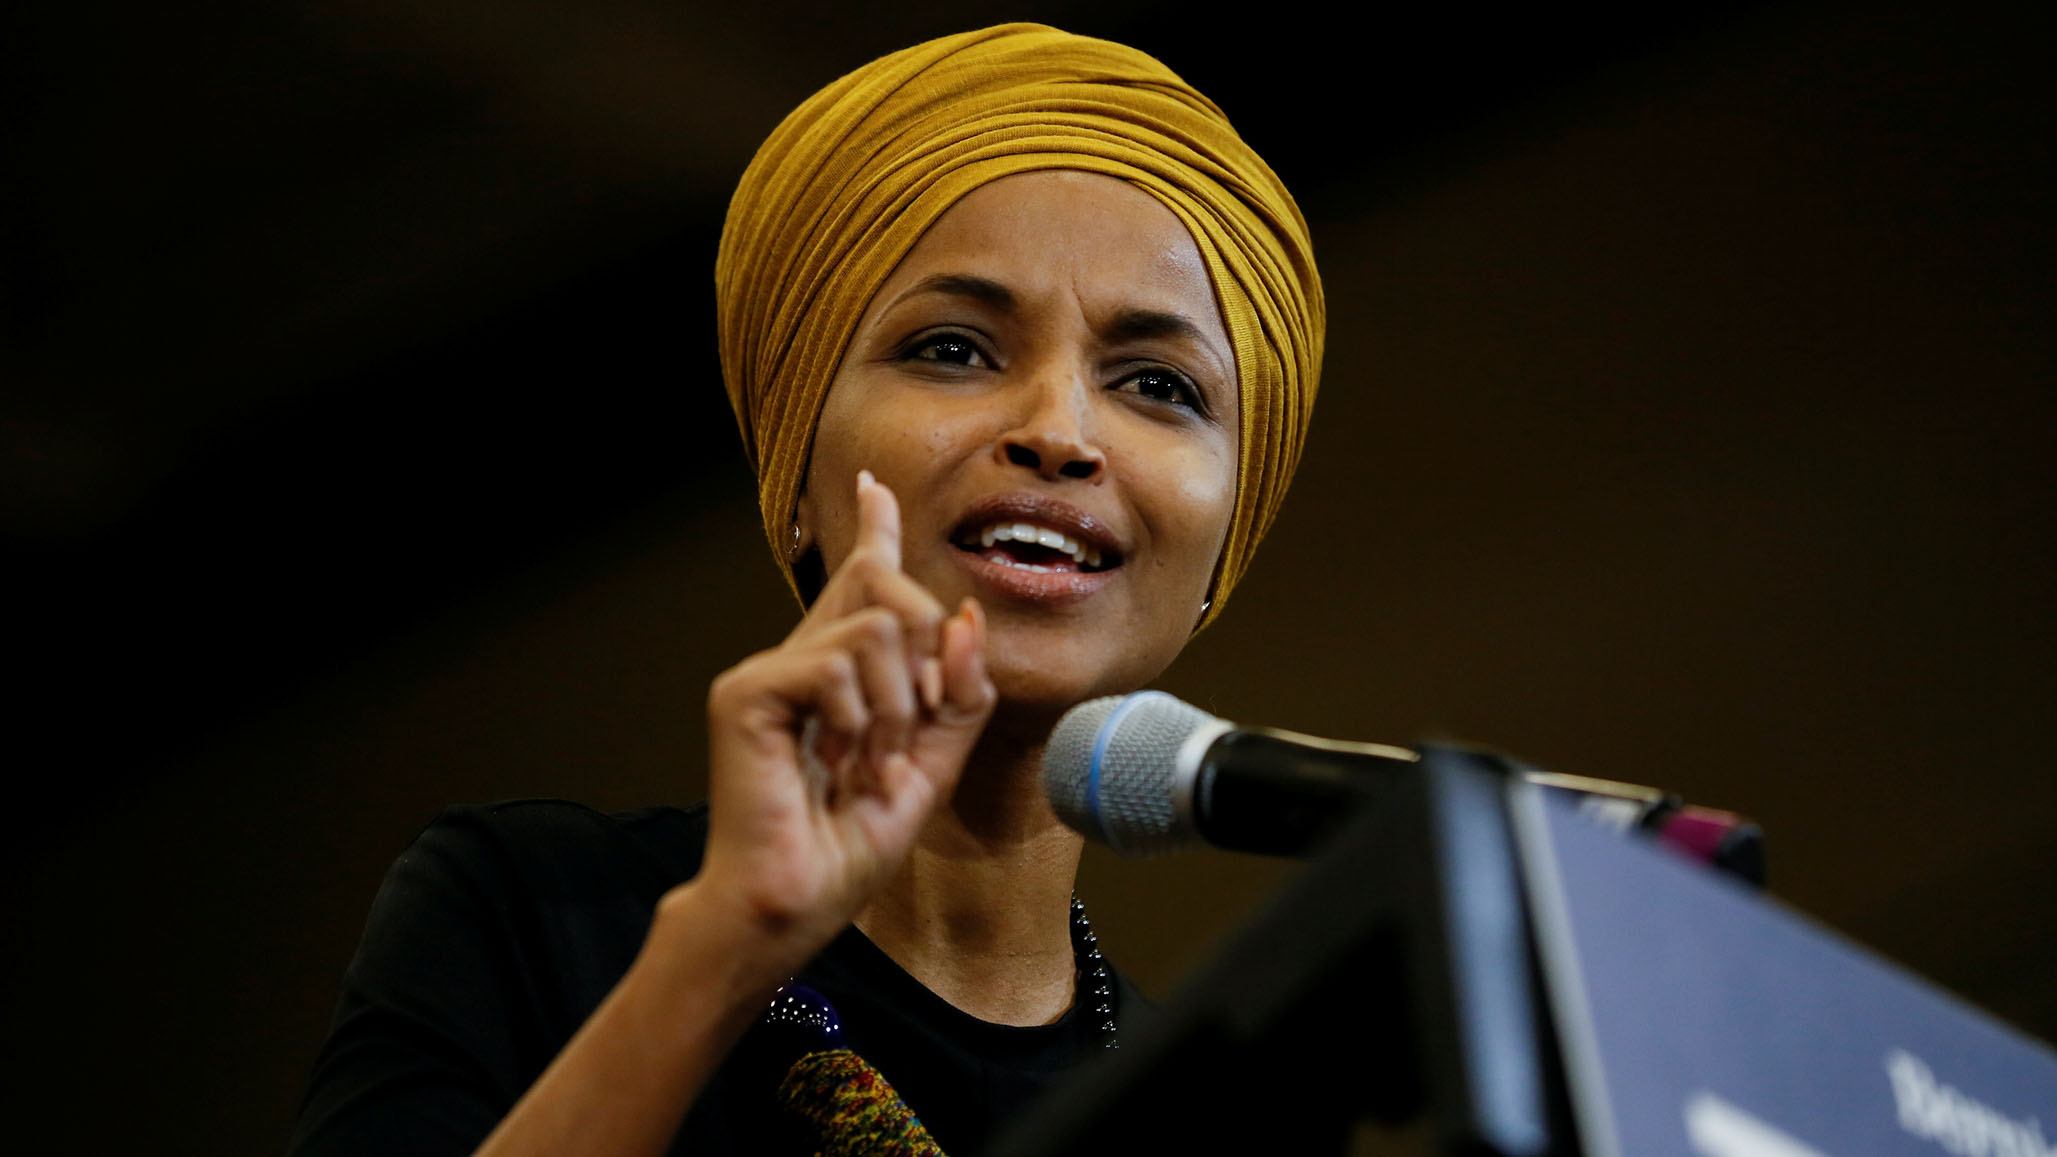 FBI Investigating Whether Ilhan Omar Married Her Brother